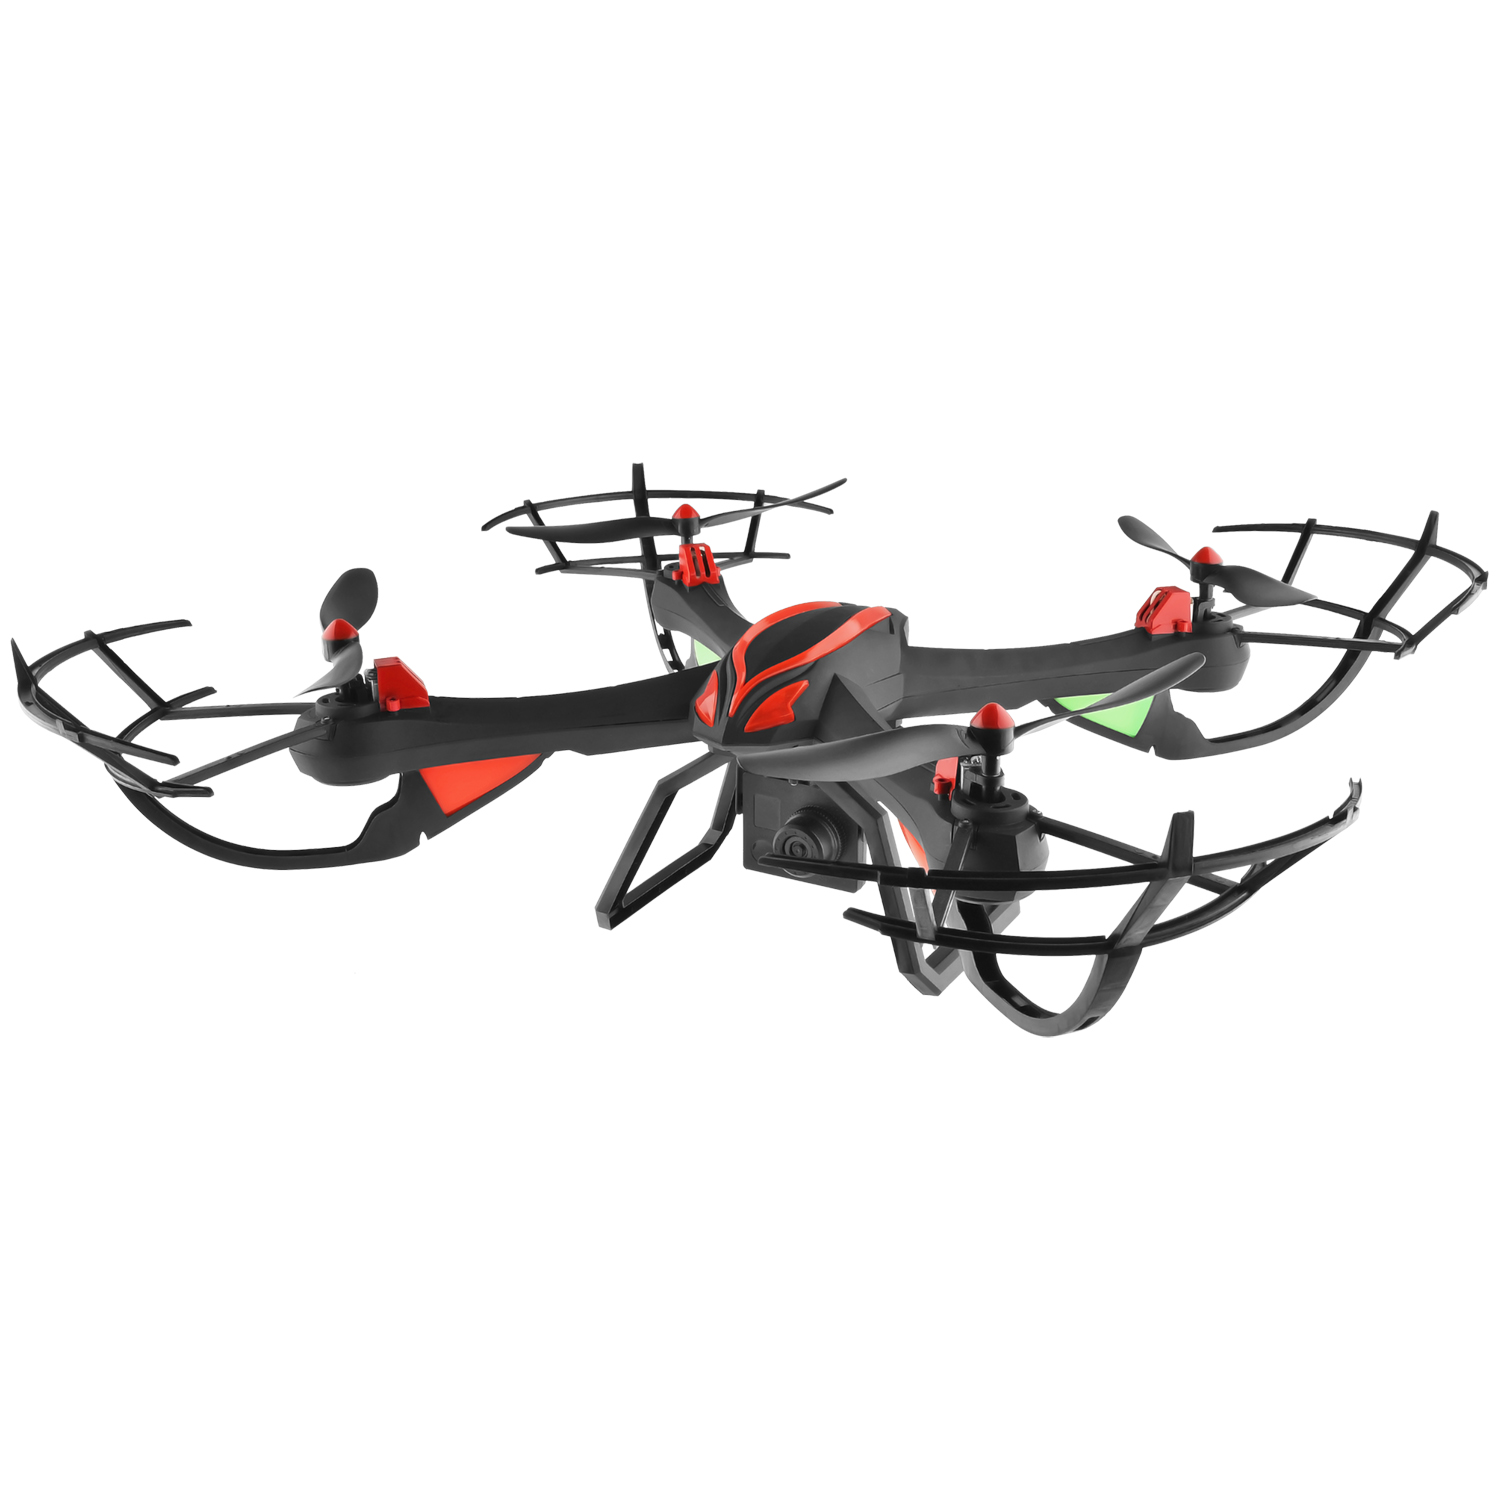 Venom Pro Gps Streaming Drone Walmart Rc Rc Drone Advanced